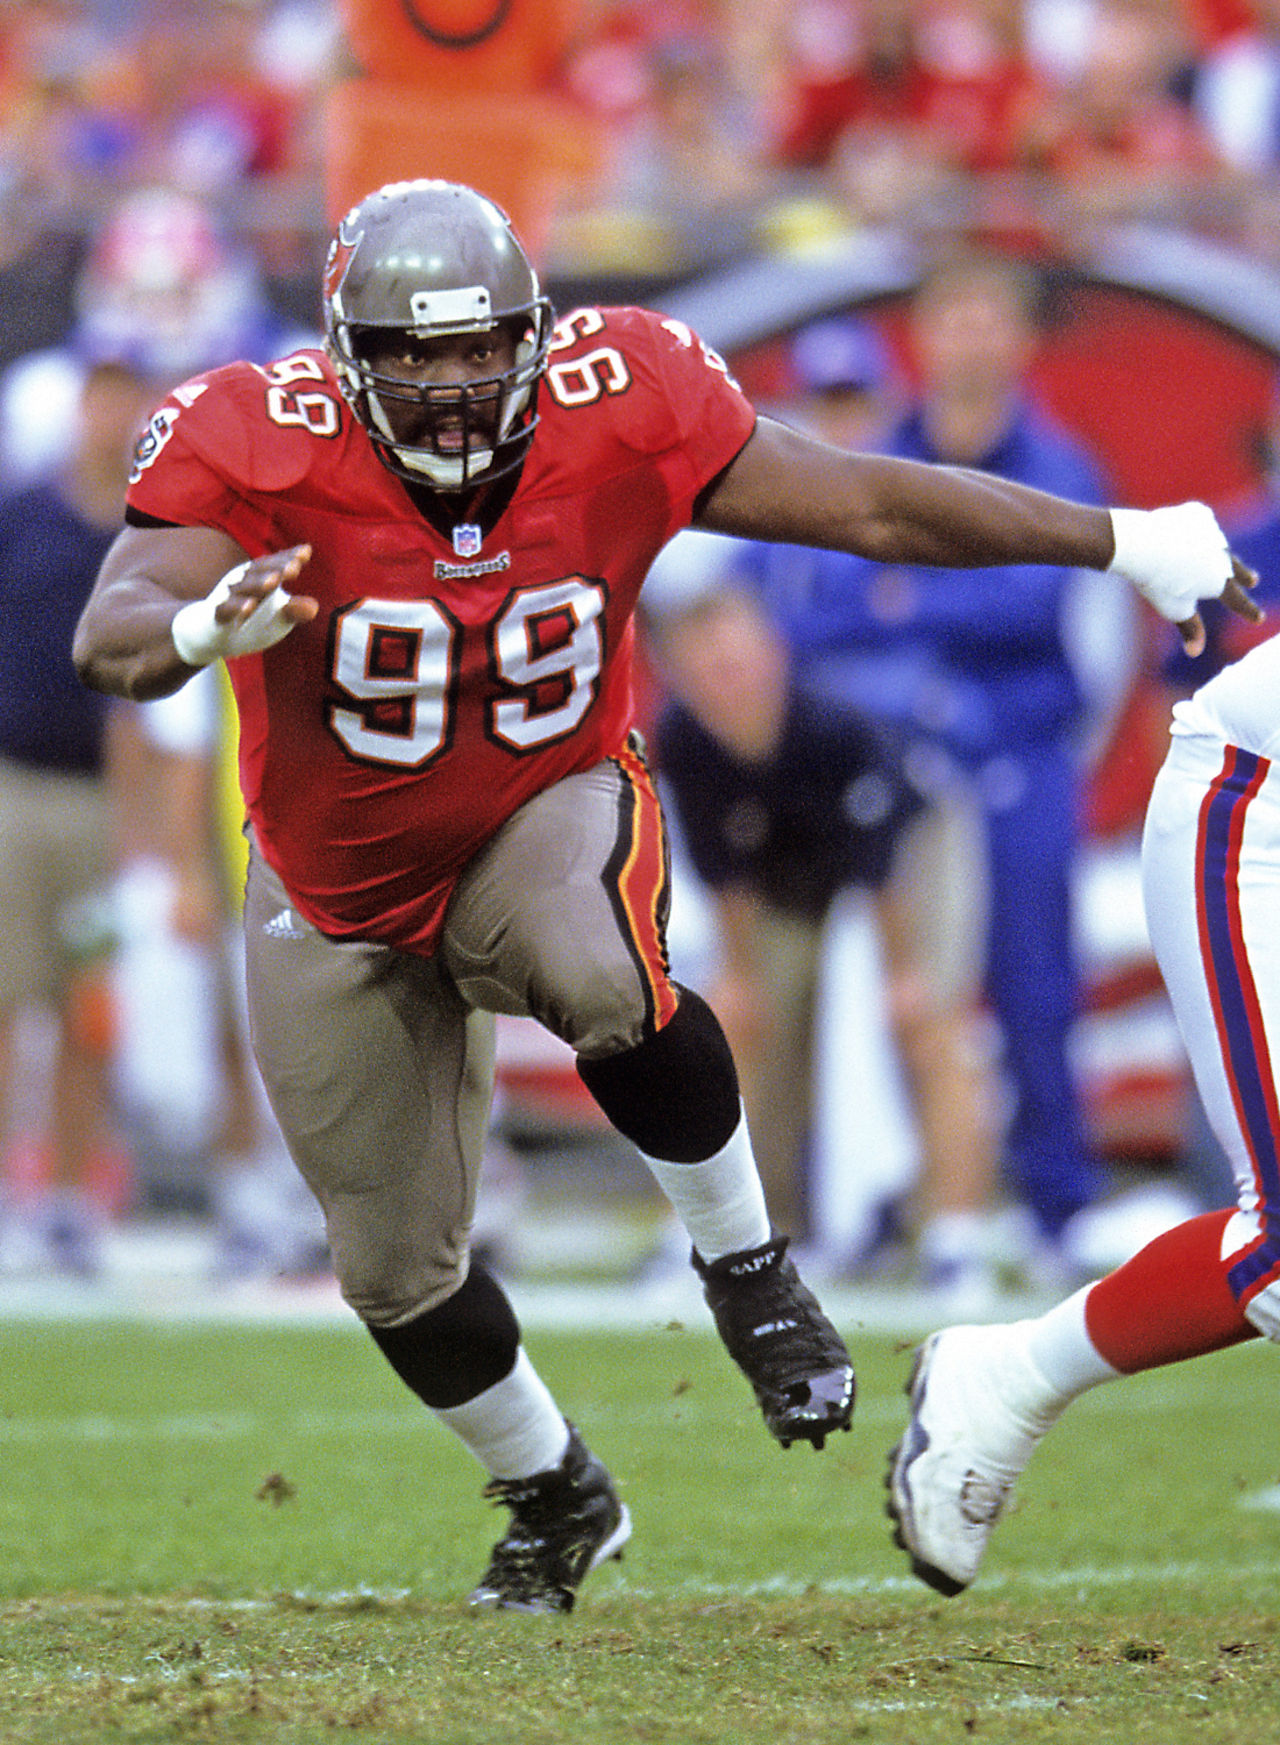 warren sapp Warren sapp net worth is-$1 million warren sapp's salary $540 thousand per year warren sapp bio/wiki 2018 he's height of 6 feet 2 inches and weight of 300 lbs he went to apopka high school in apopka, florida.